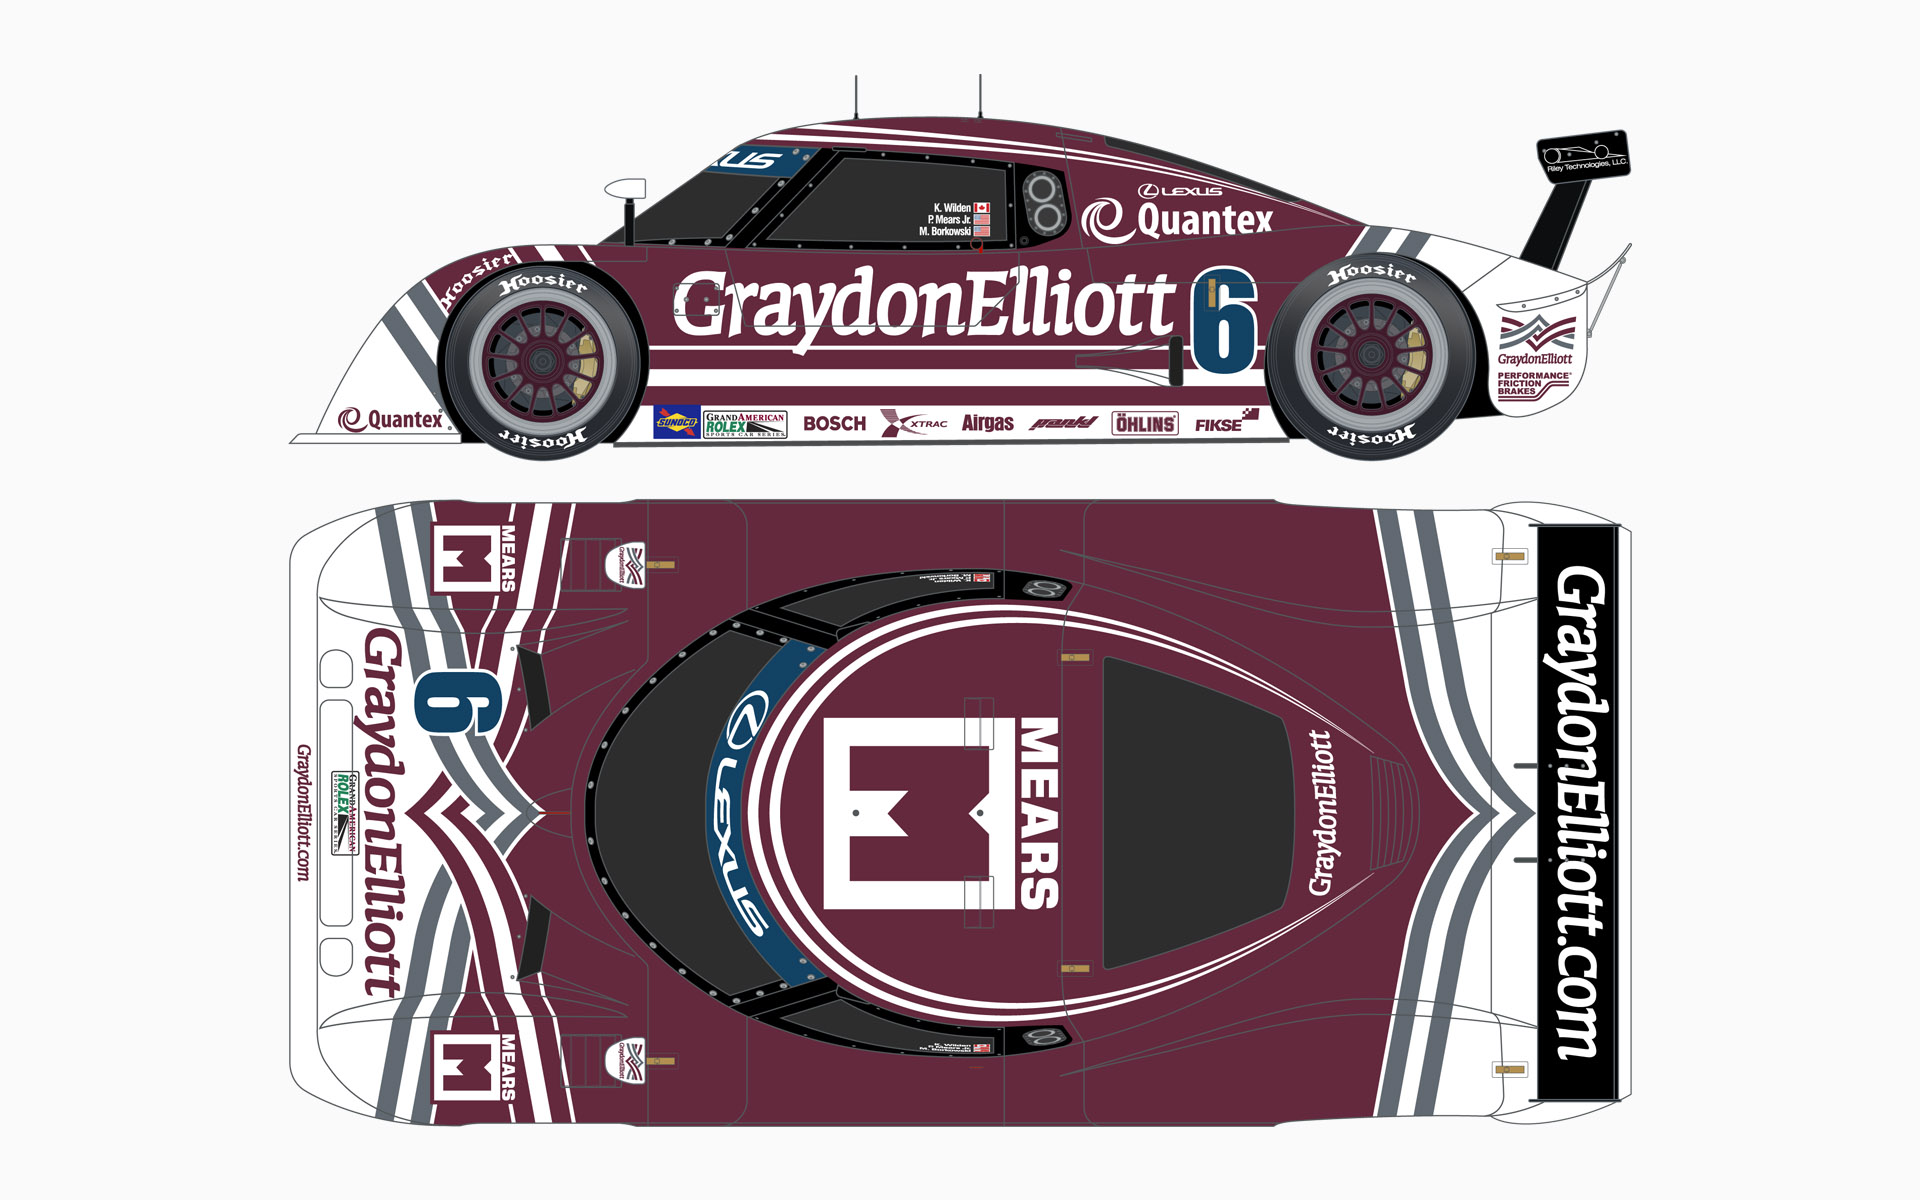 Michael Shank Racing Graydon Elliott Riley MKXI Daytona Prototype Livery Elevations